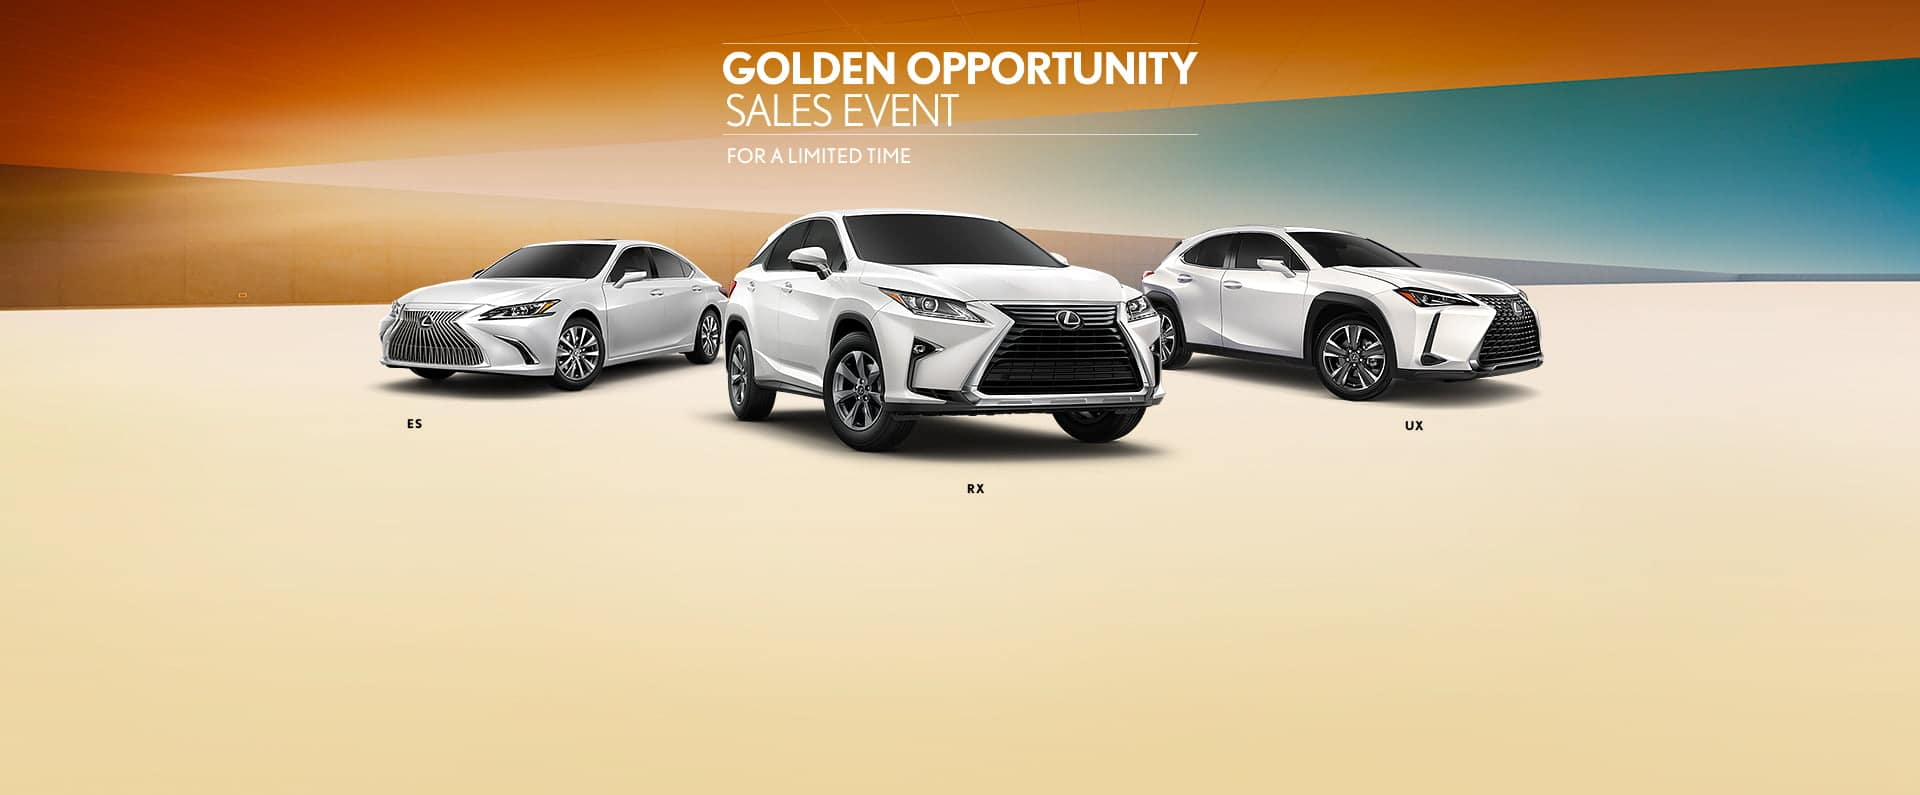 Luxury Cars For Sale Lexus Of Las Vegas